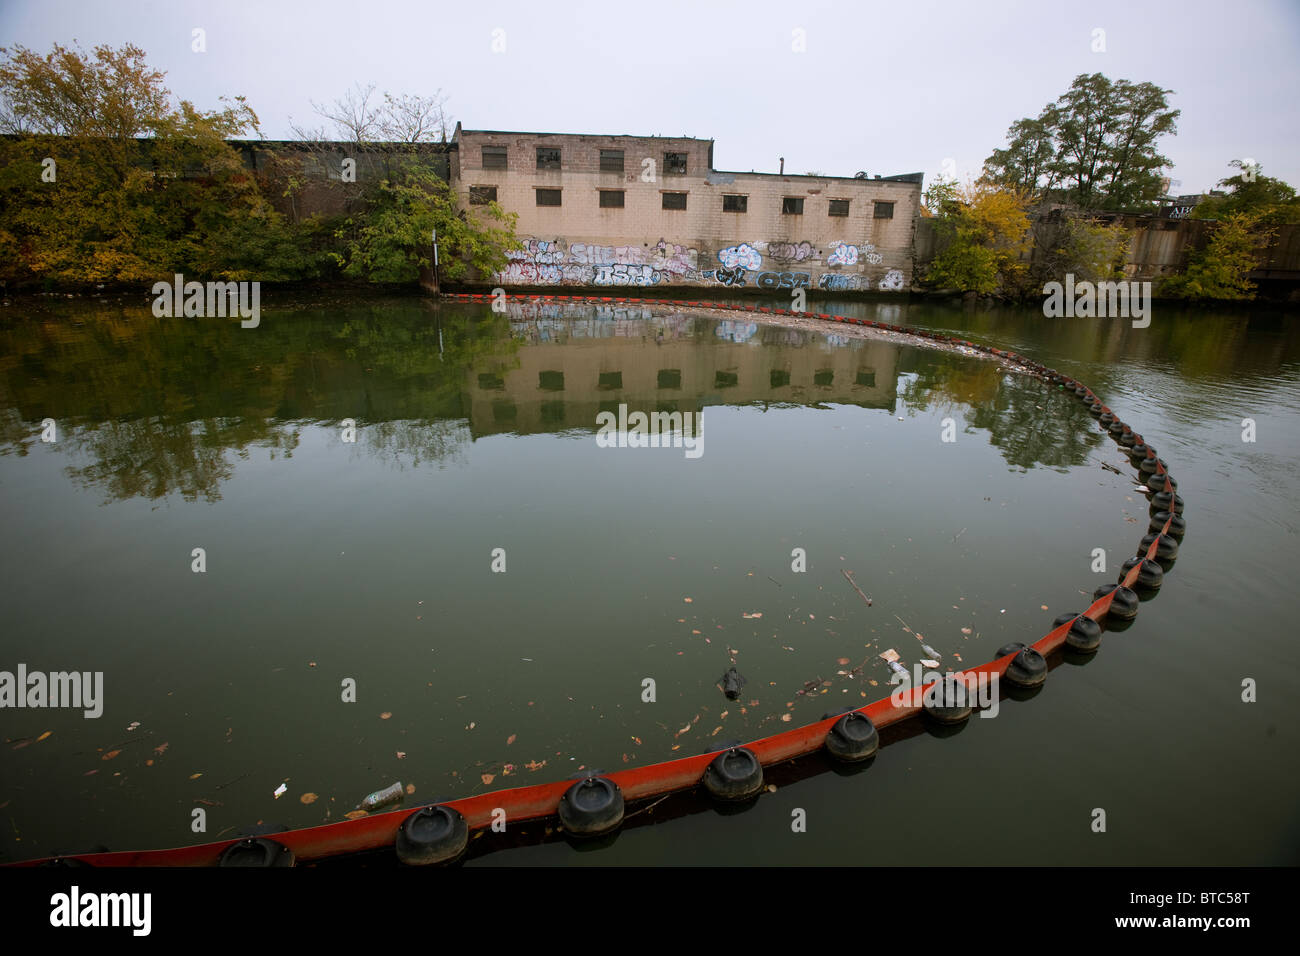 A boom to contain debris in the Bronx River from flowing into Long Island Sound is seen at Concrete Plant Park in - Stock Image